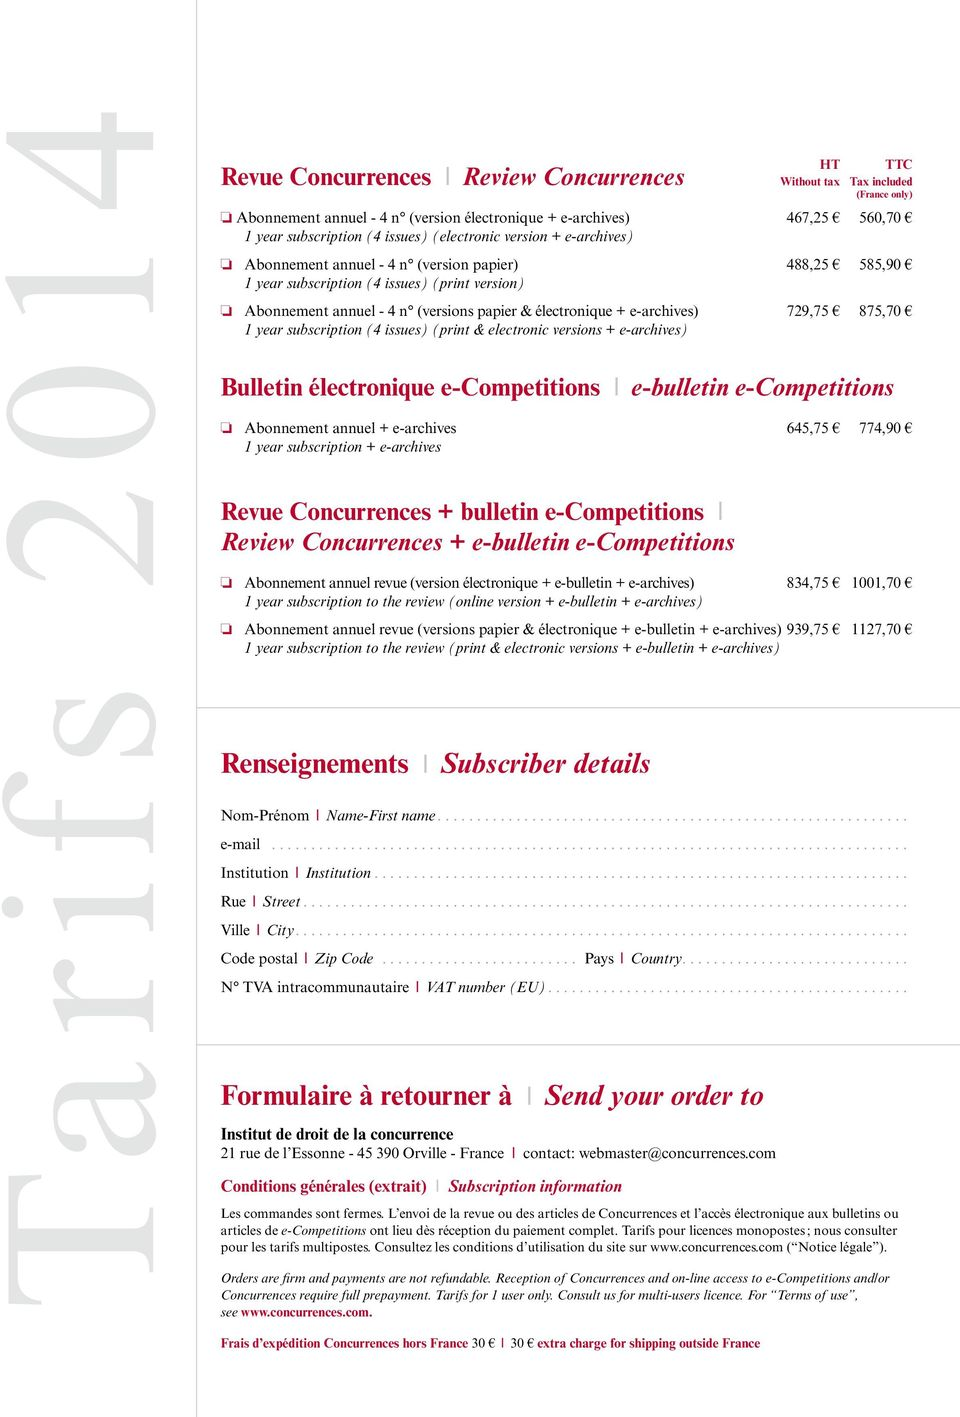 e-archives) Bulletin électronique e-competitions l e-bulletin e-competitions o Abonnement annuel + e-archives 645,75 774,90 1 year subscription + e-archives Concurrences l Review Concurrences Revue